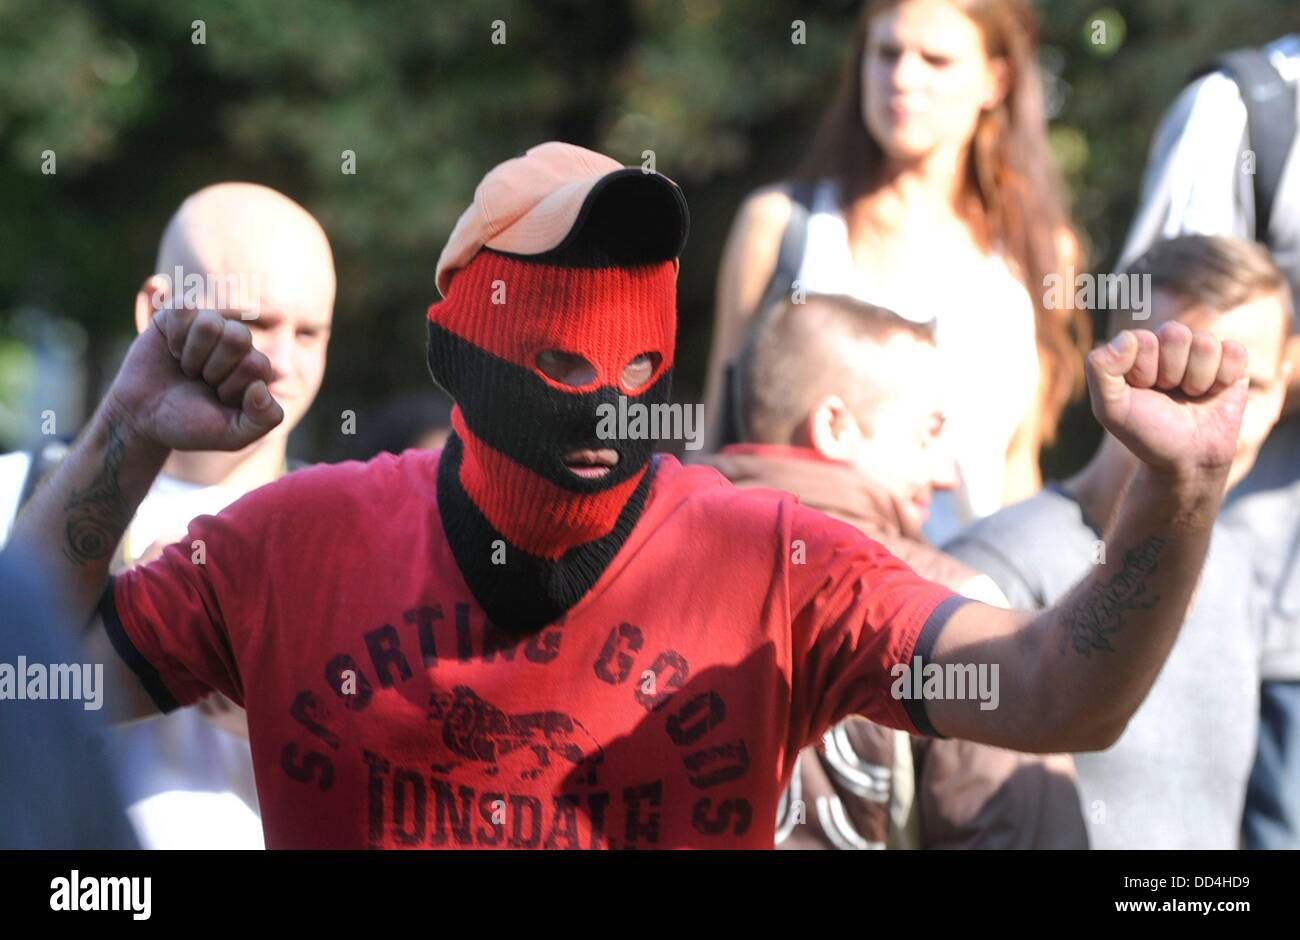 Anti Romany march of right wing extremists ended with clash with police in Ostrava, Czech republic on August 24, - Stock Image